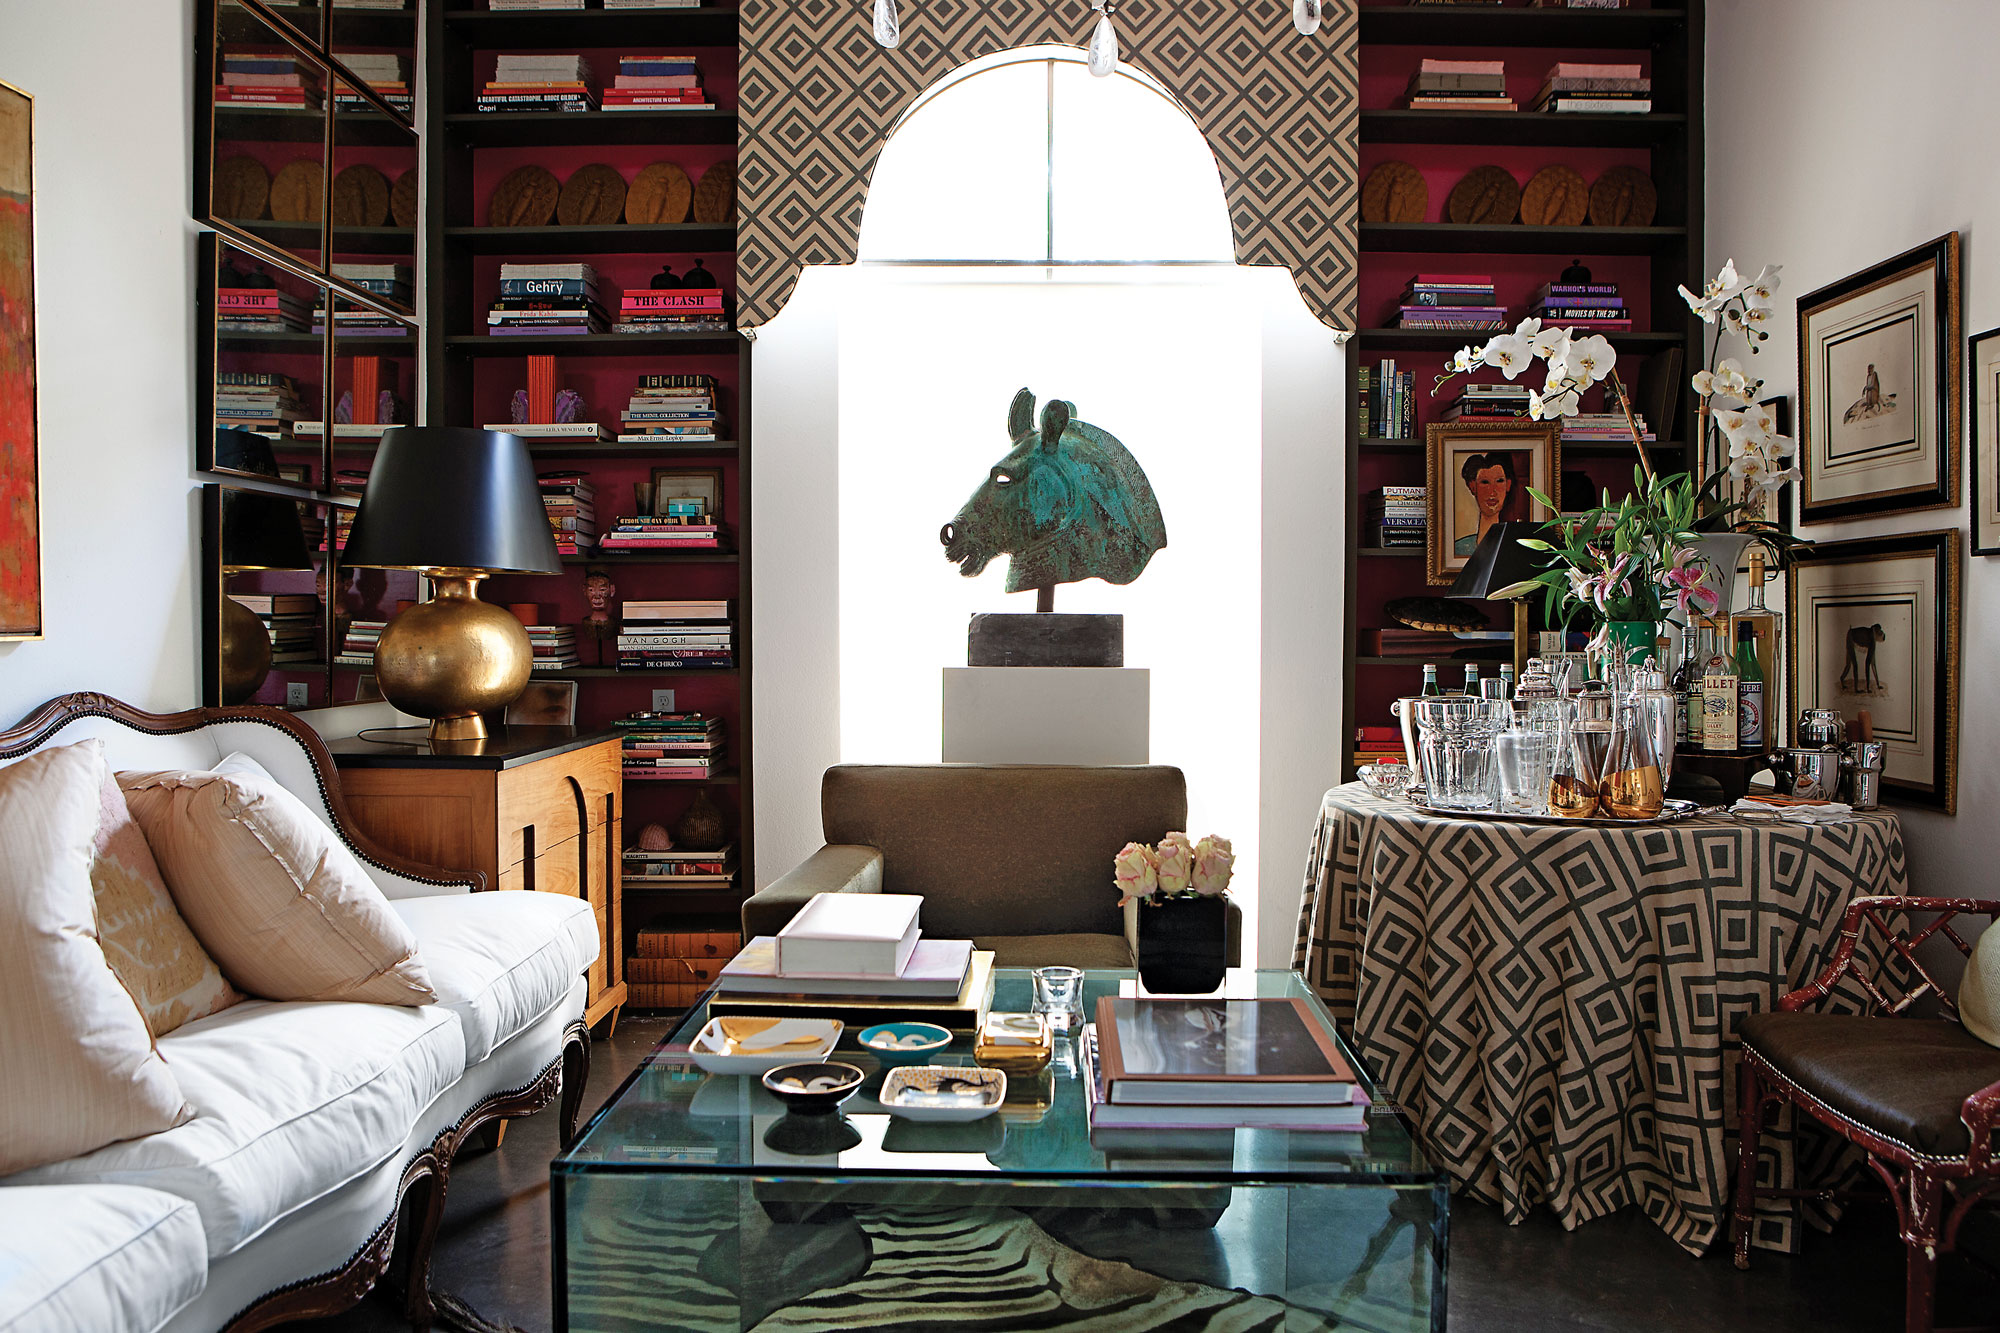 The library/den is centered around a Roman bronze horse head from Biff Agee, which sits atop a custom wooden stand. Valence is covered in David Hicks La Florentina from Lee Jofa\Kravet, flanked by a pair of bookshelves painted olive with hot-pink interior. A David Hicks-inspired drinks table holds a large silver tray, Baccarat ice bucket, collection of vintage crystal shakers and decanters. Antique hand colored prints were gifts from Cathy's mother. Faux-bamboo chair covered in olive-colored cowhide. Zebra rug from Custom Creations is beneath a custom glass cube coffee table. An 18th-century French Louis XIV sofa from James Powell is flanked by Donghia chests and Robert Kuo hammered-gold, washed-bronze lamps from Ellouise Abbott.